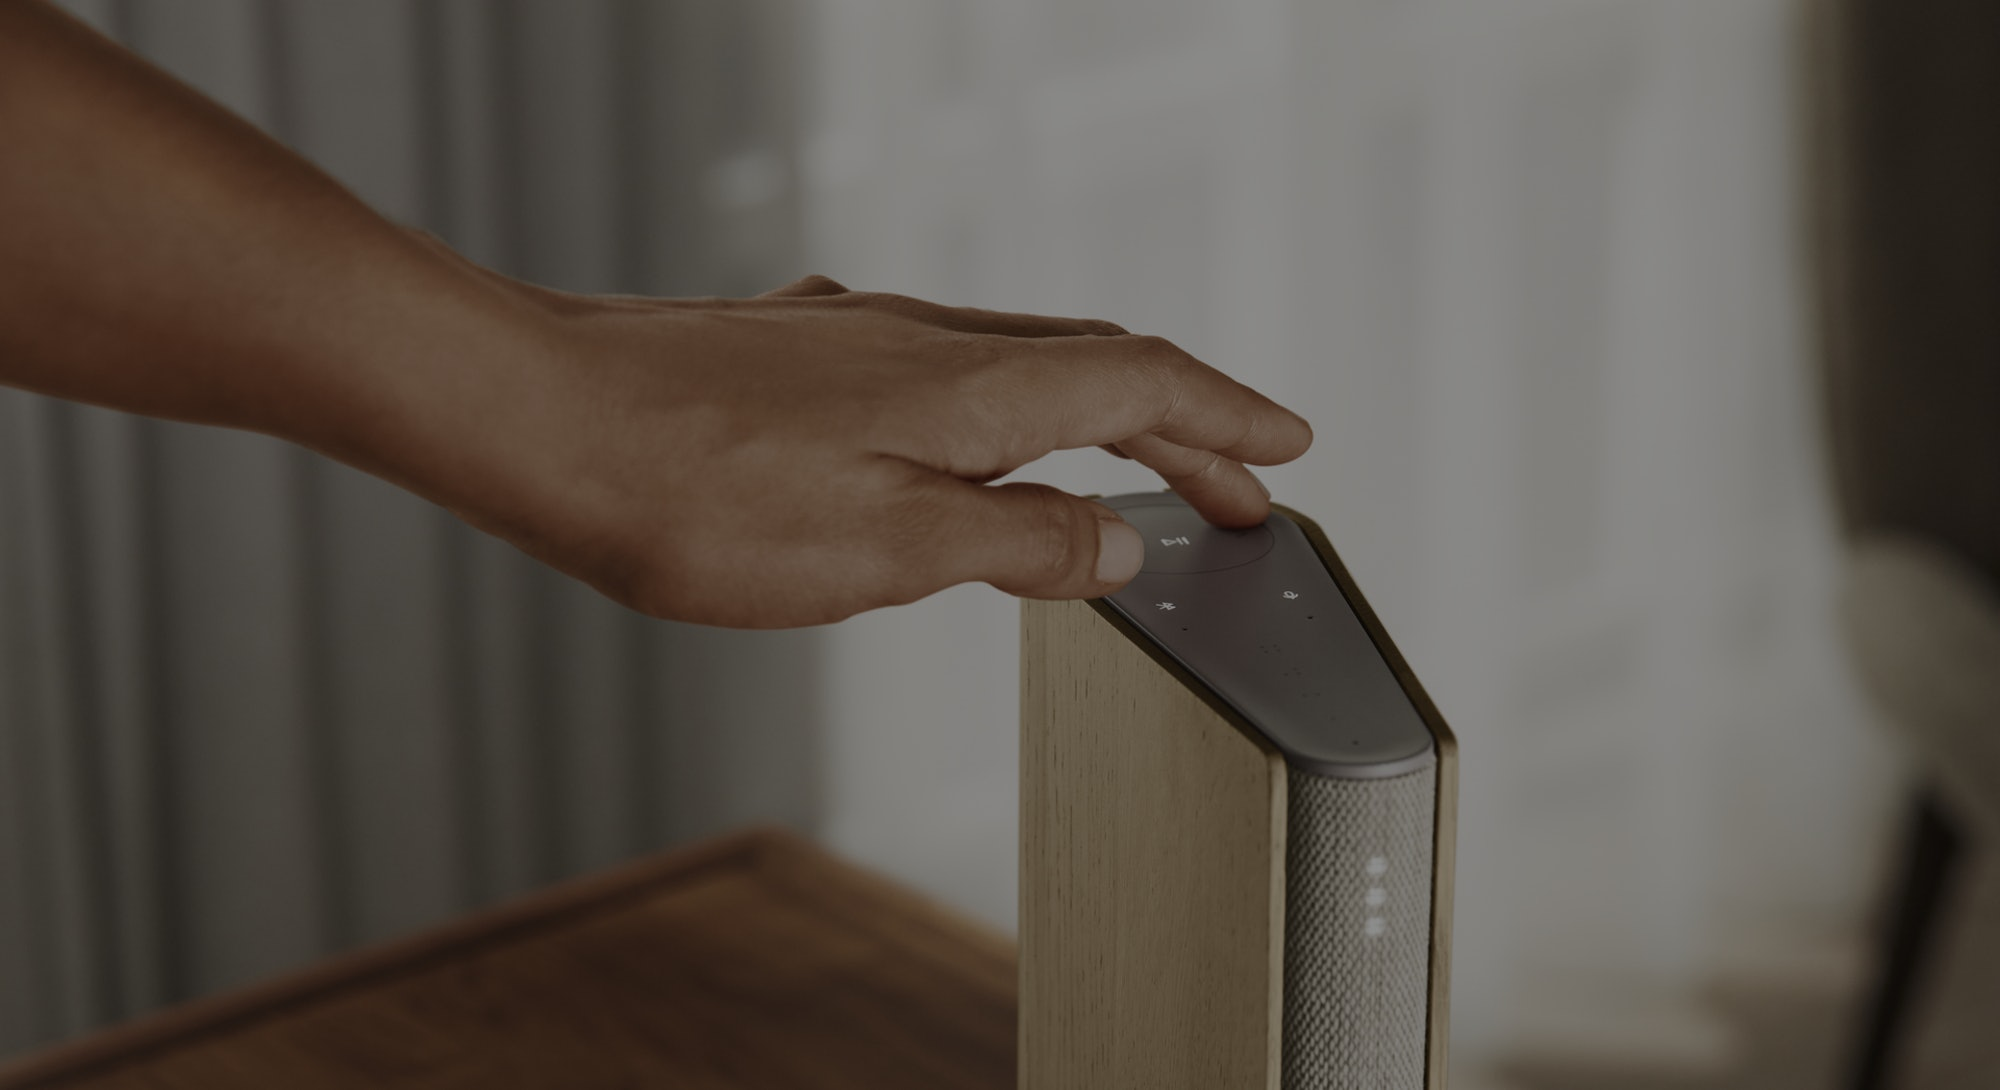 A hand is touching a compact Bang and Olufsen Emerge speaker.